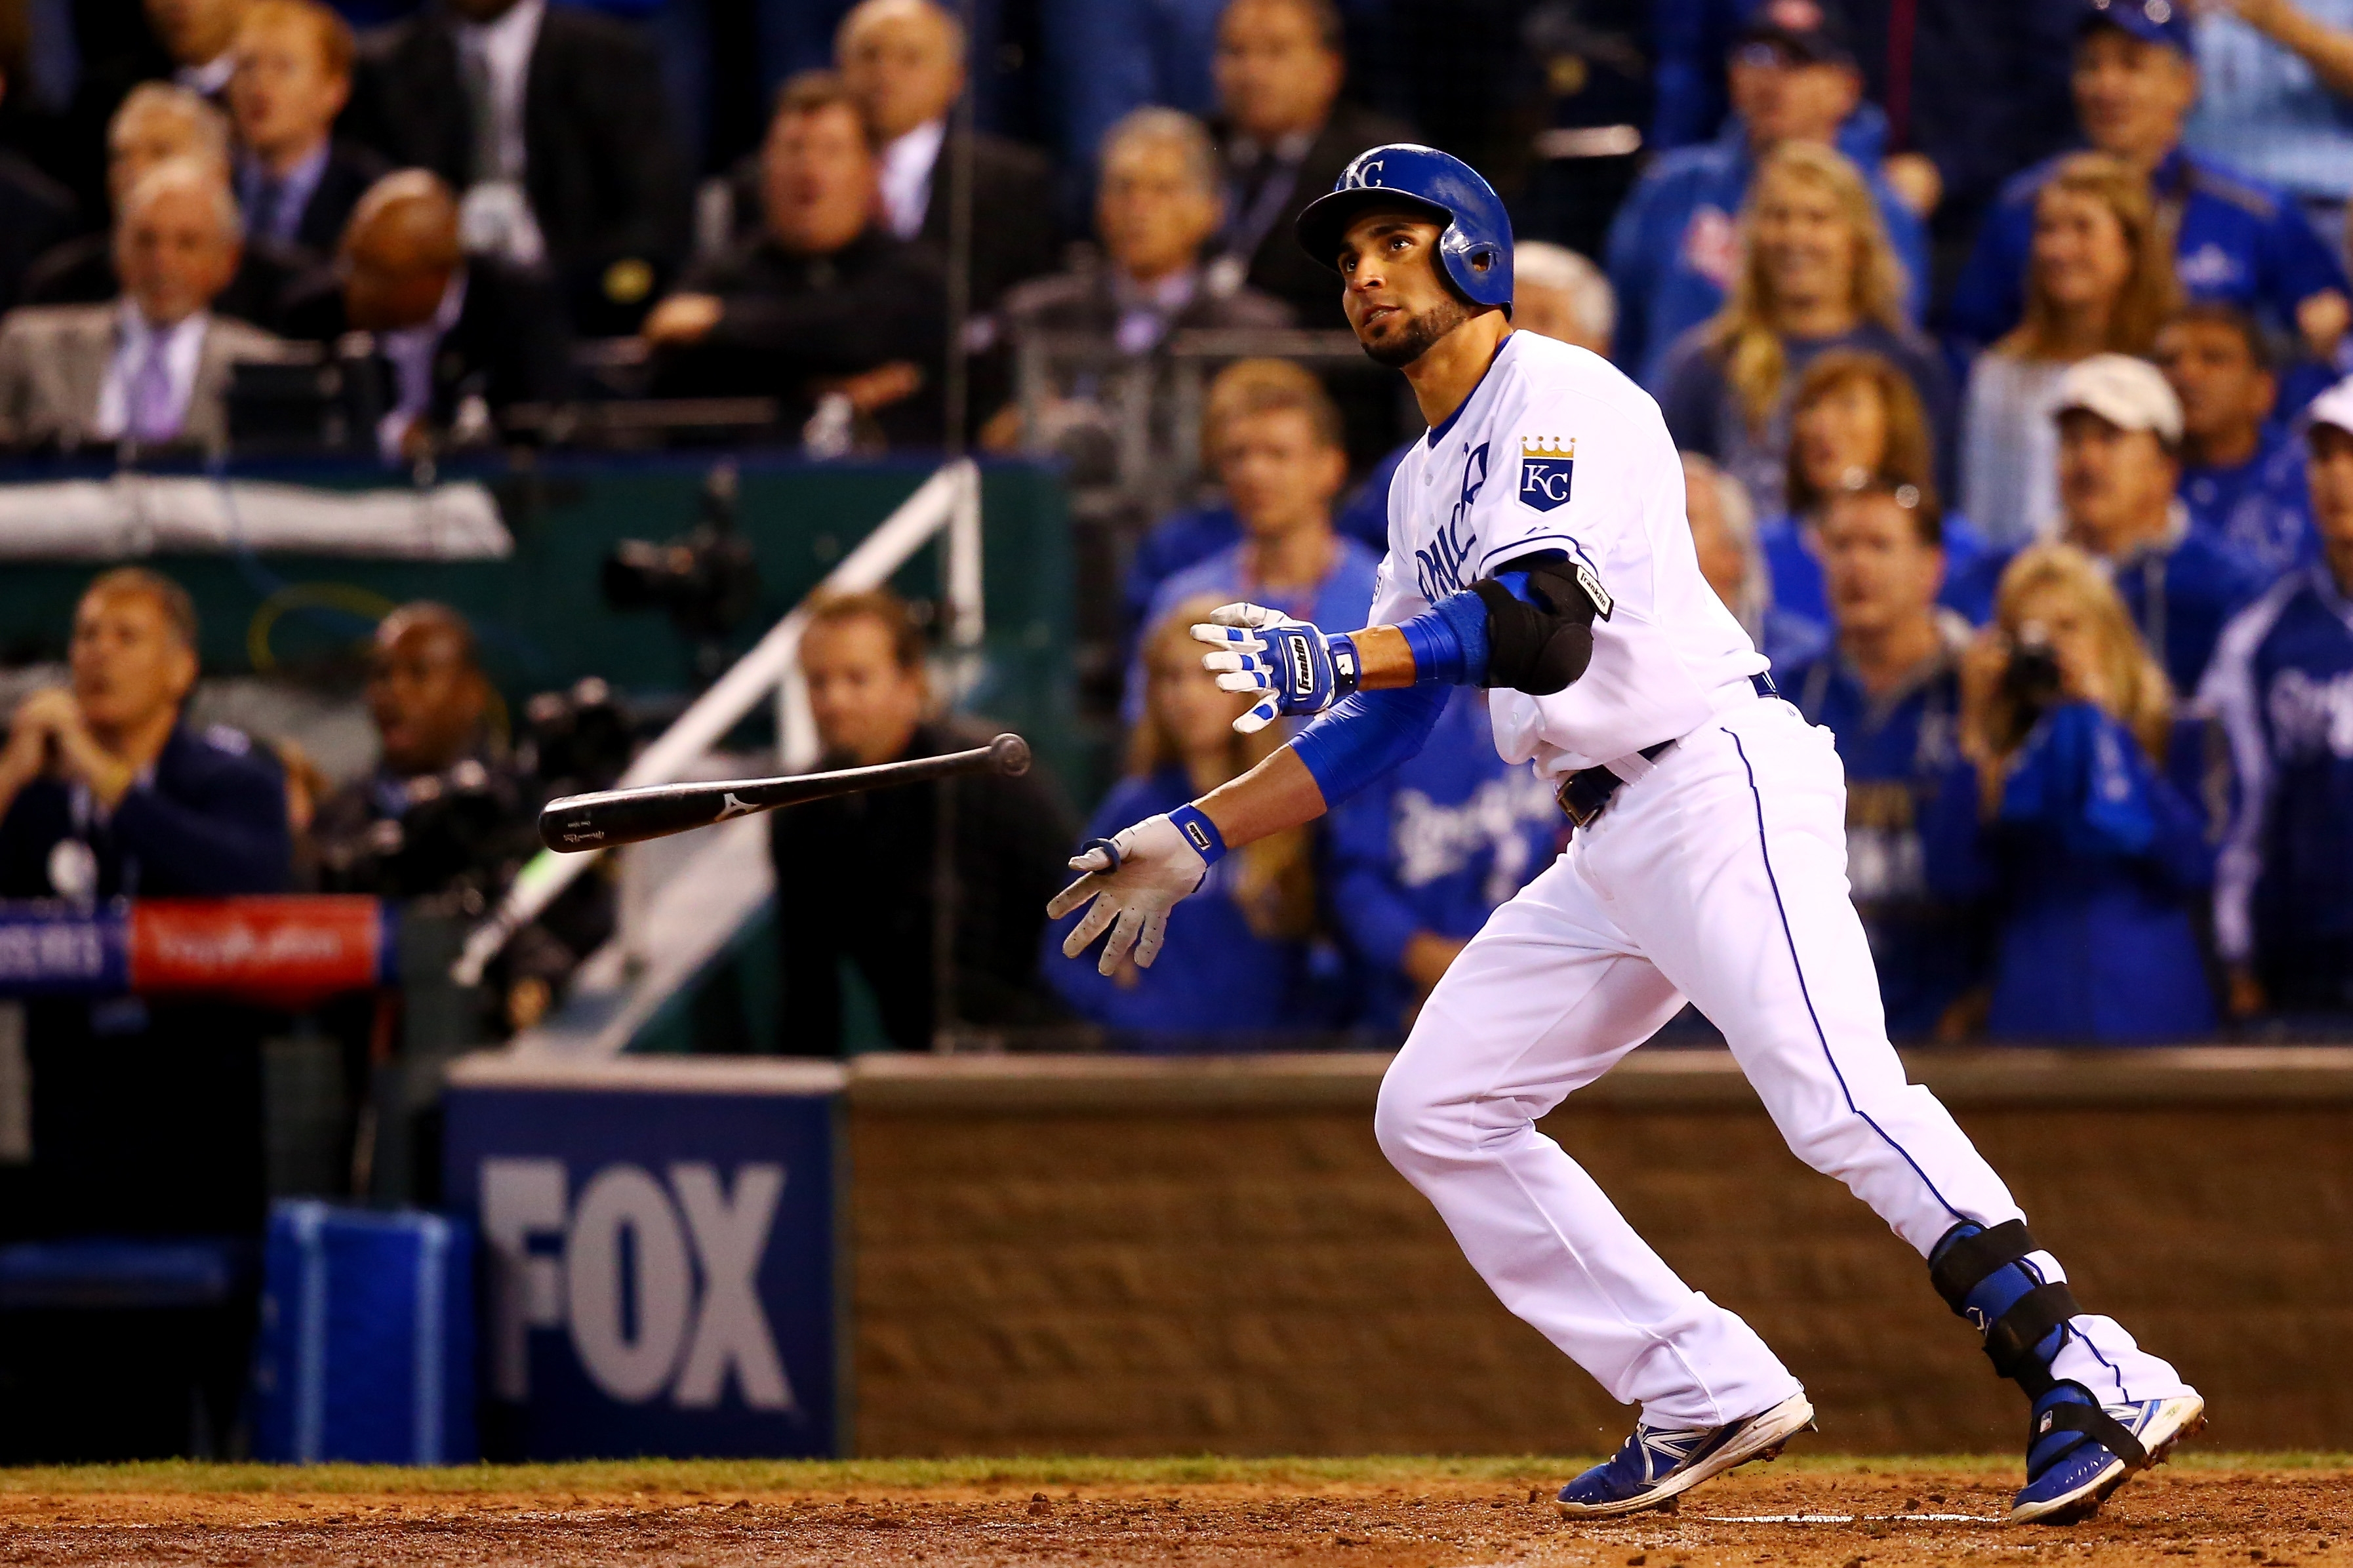 Omar Infante's home run helped the Royals tie the World Series, 1-1.